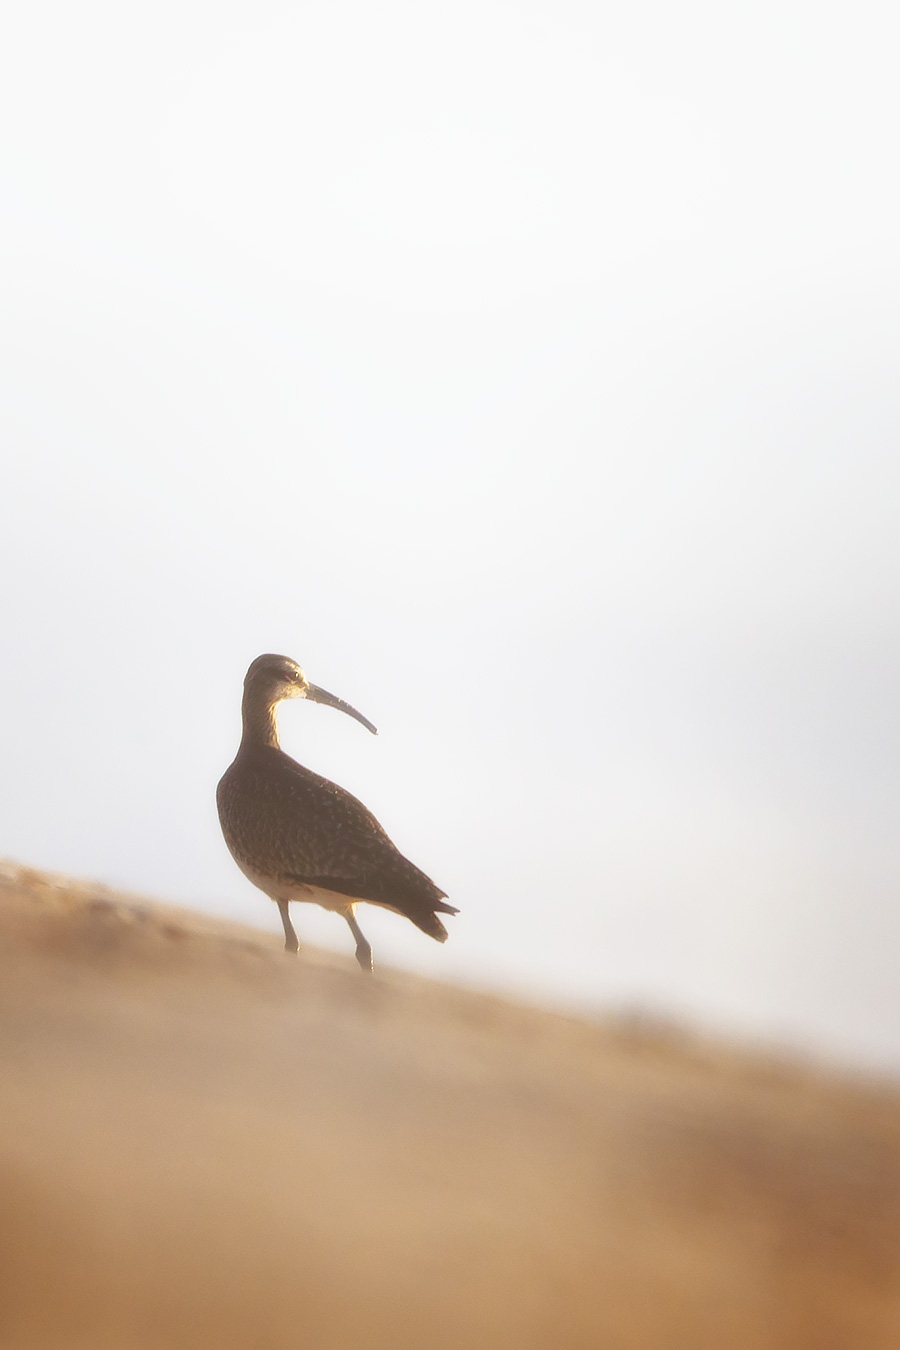 A Whimbrel, with its unmistakable curved beak, looks for Humpbacks during this morning's modest-dud-of-a-sunrise. Happy Shorebird Day, Whimbrel.